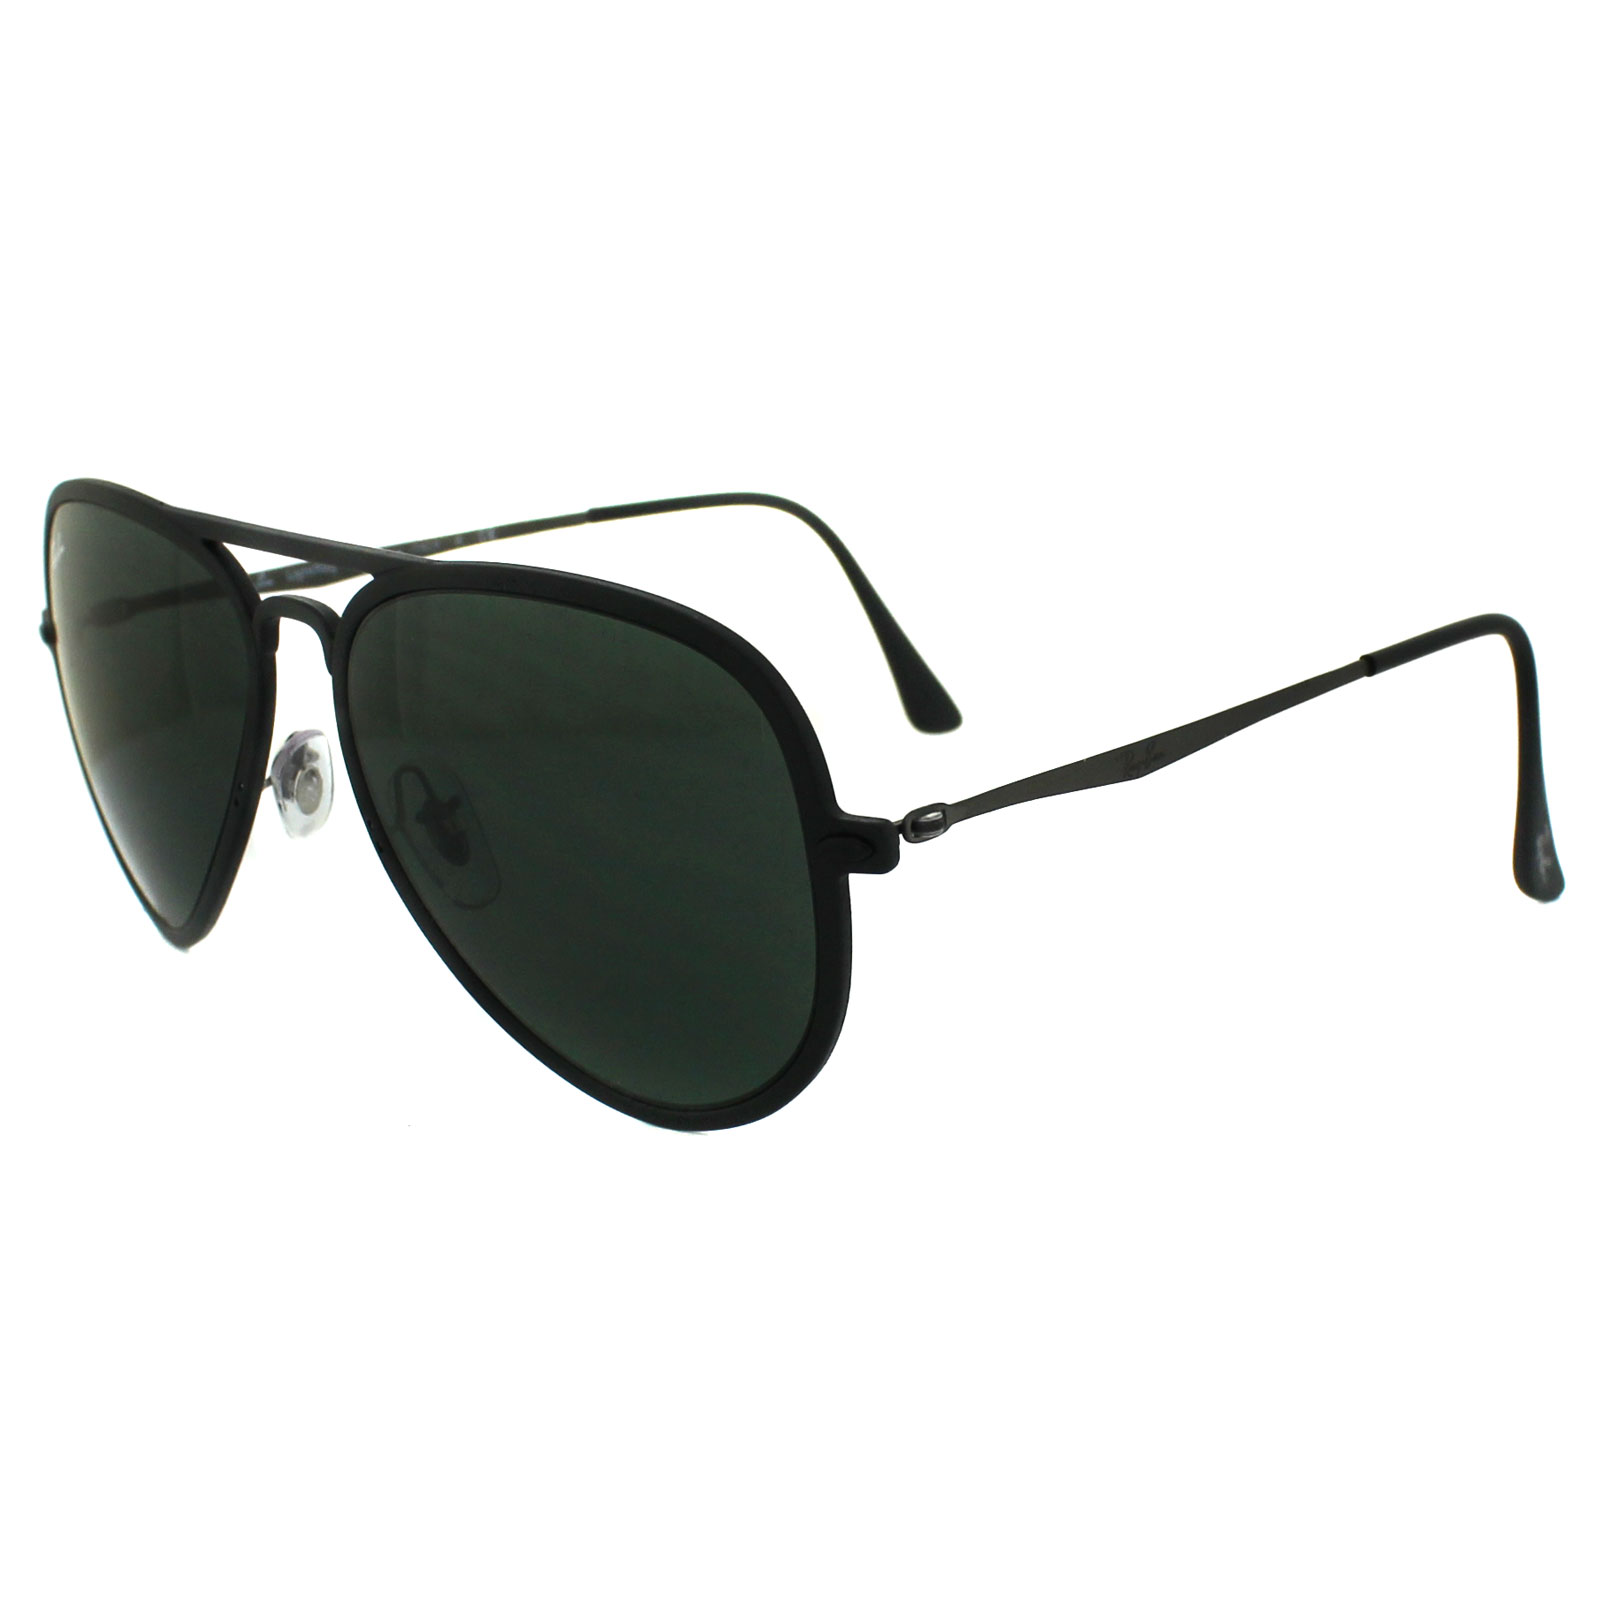 cheap ray ban aviator light ray ii 4211 sunglasses discounted sunglasses. Black Bedroom Furniture Sets. Home Design Ideas